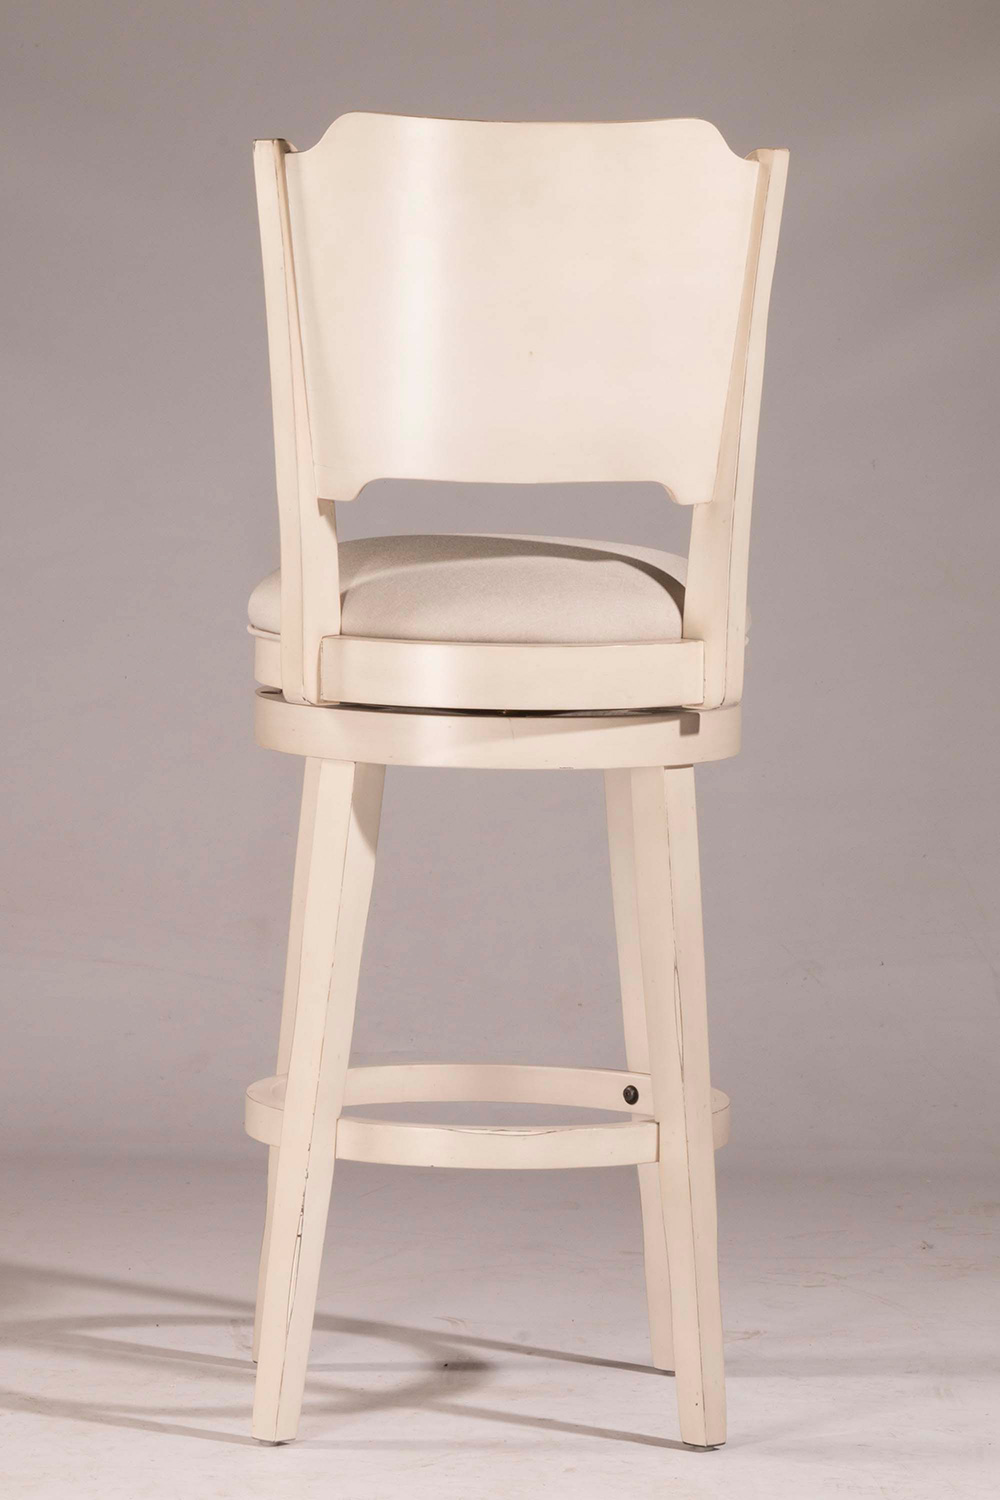 Hillsdale Clarion Swivel Counter Stool - Sea White - Fog Fabric